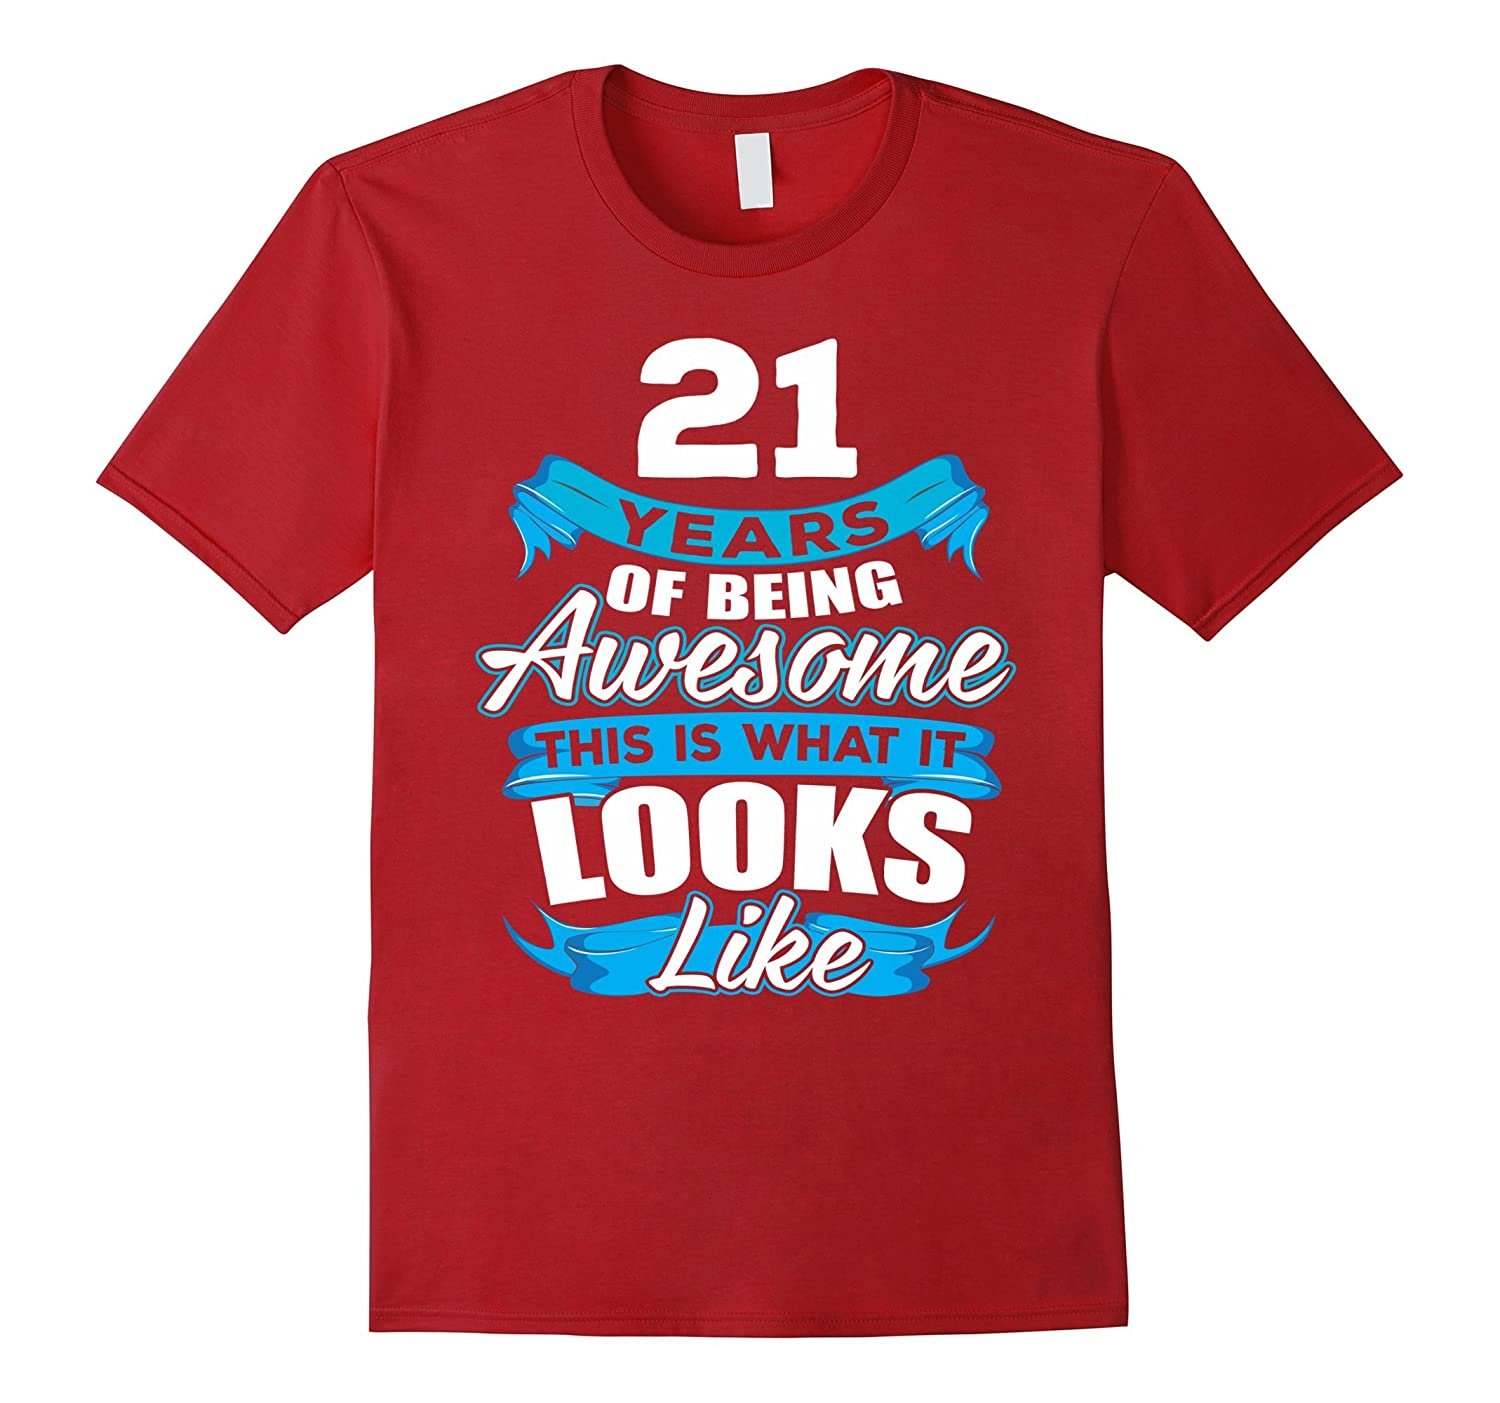 Birthday Gifts For 21 Year Old Women: 21 Years Old Being Awesome Shirt